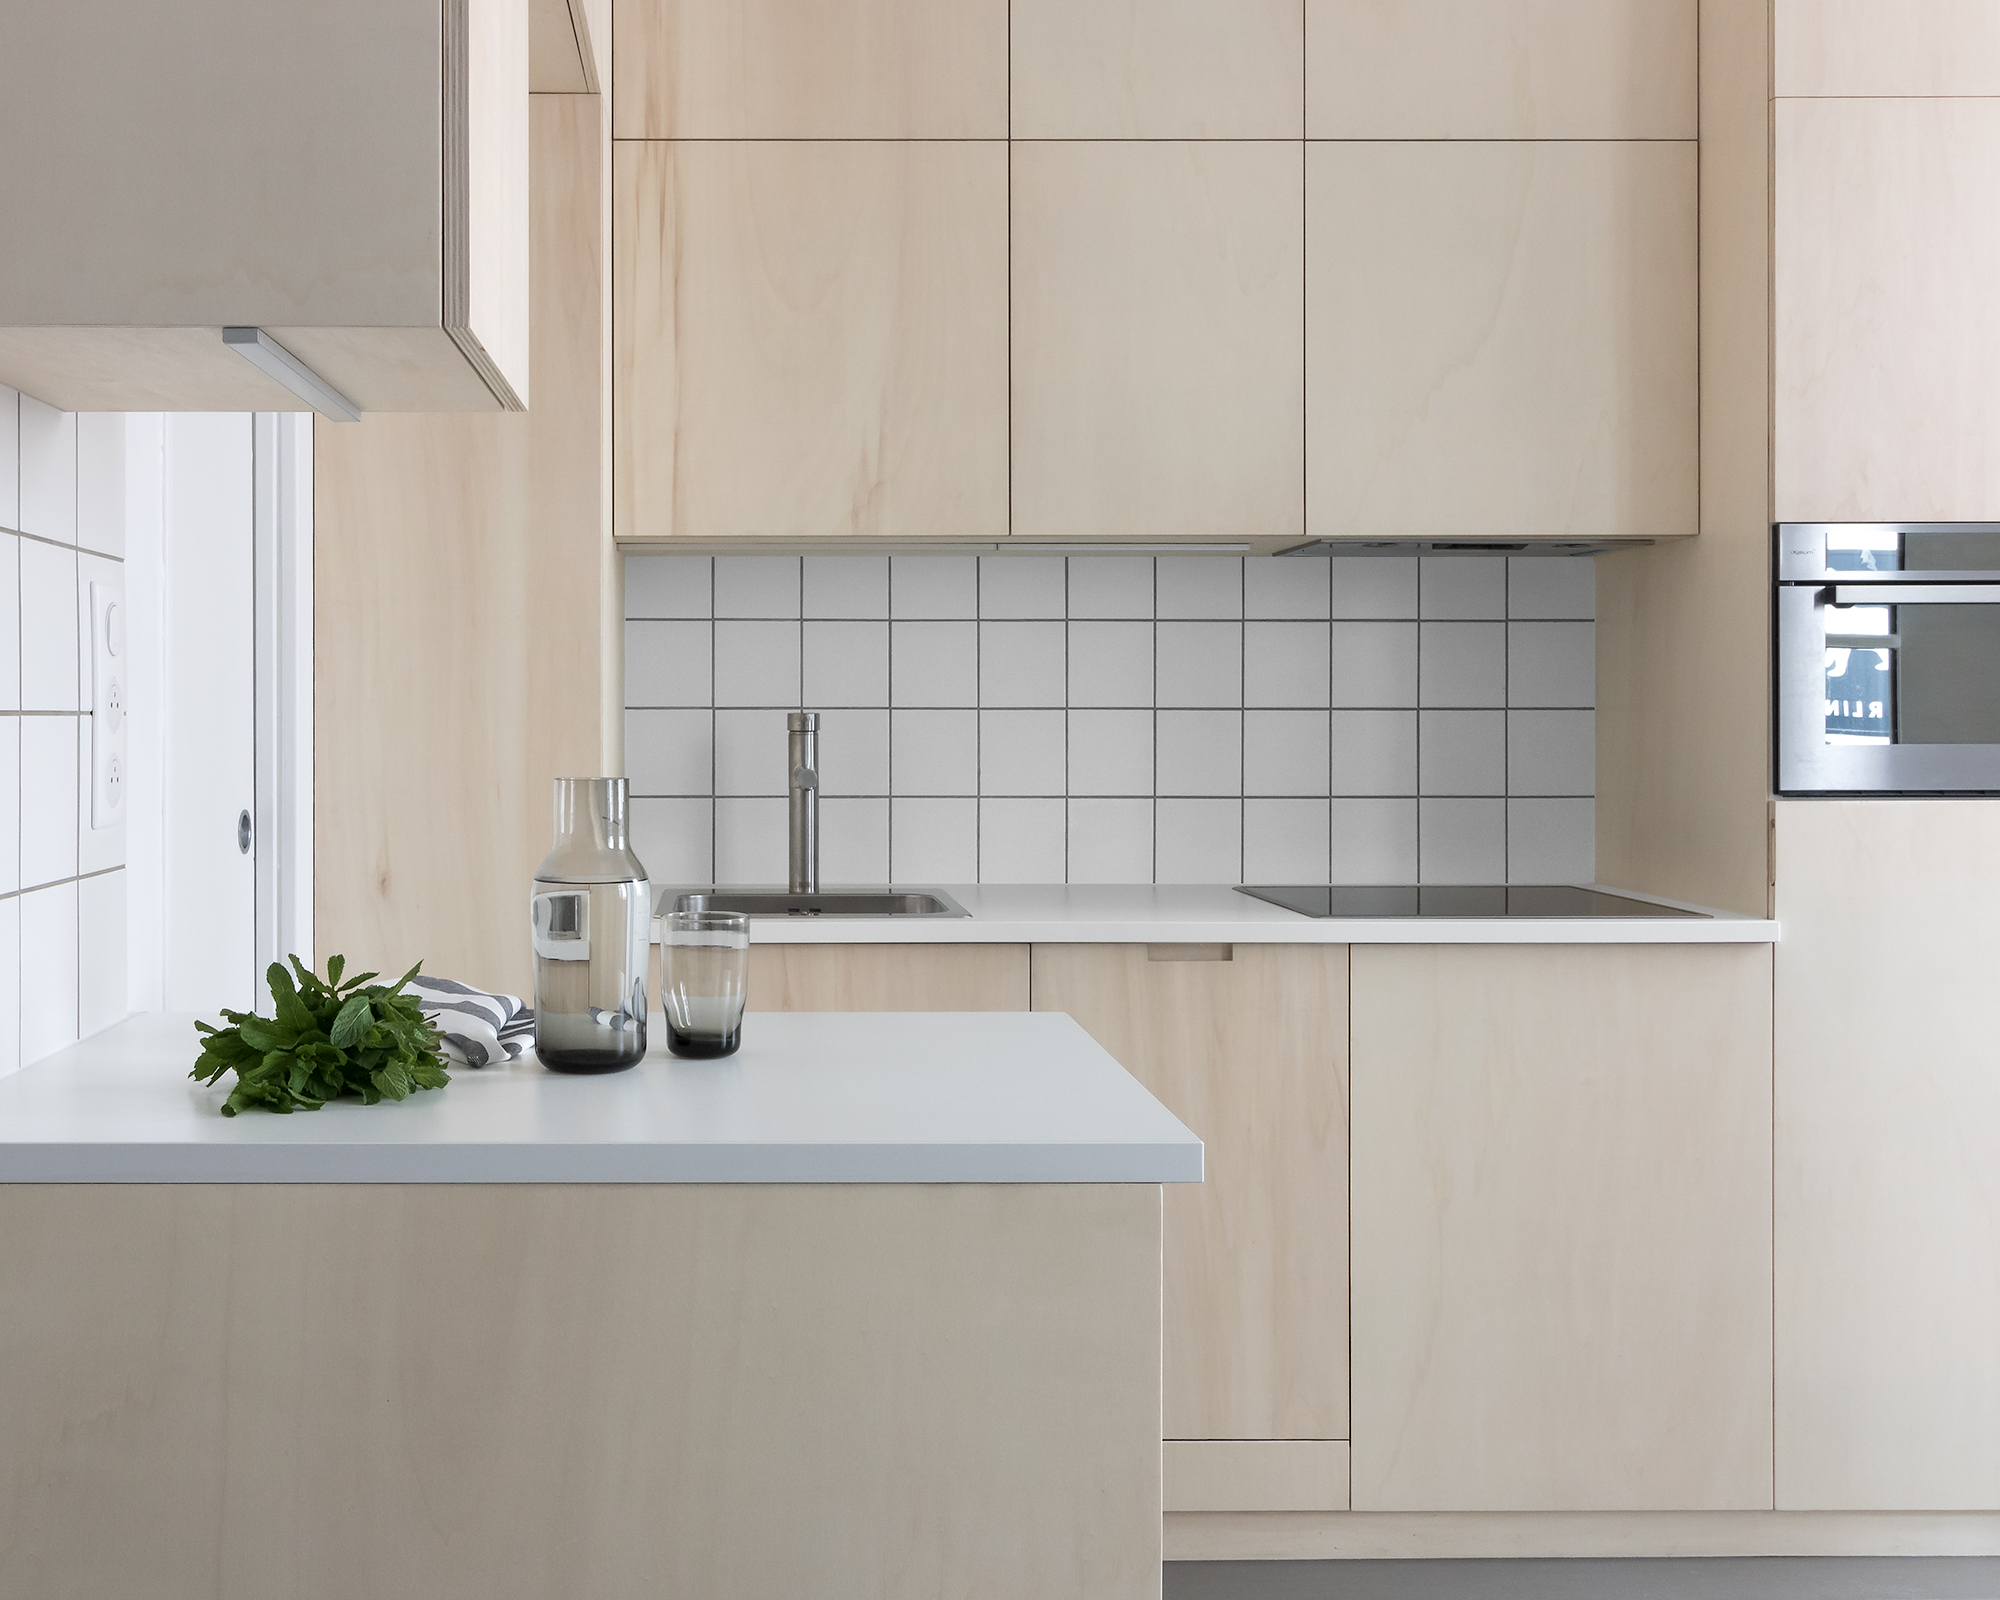 Japanese style, minimal, modern plywood kitchen with grey oak floor and white tiles